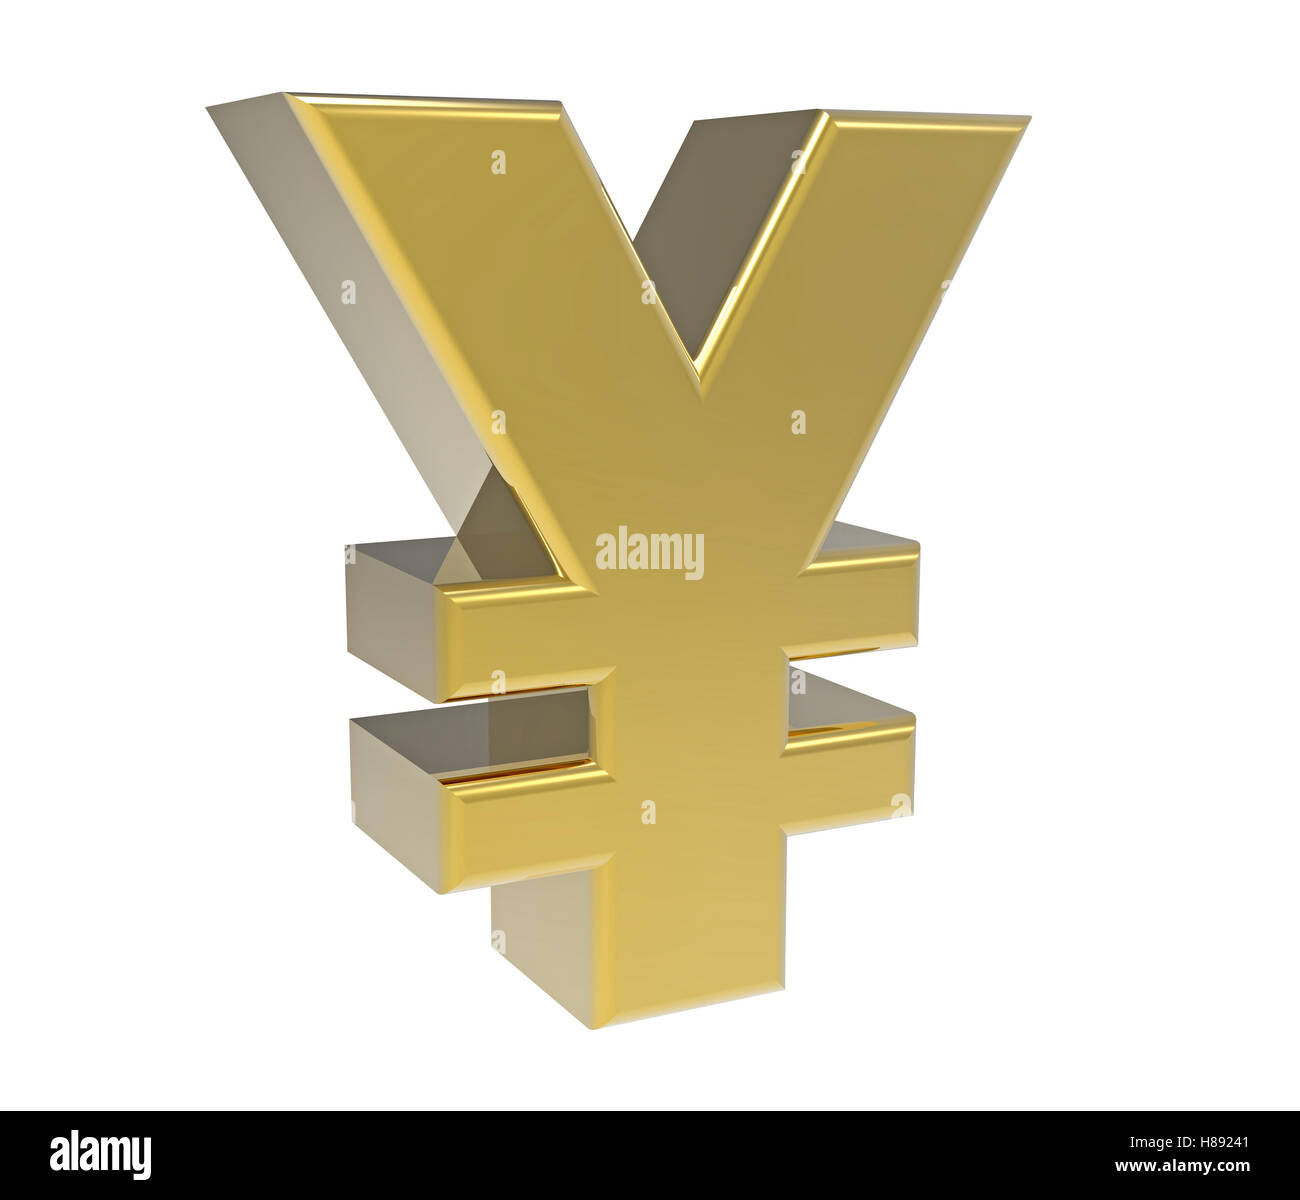 Symbol of yen japanese currency 3d rendering stock photo symbol of yen japanese currency 3d rendering biocorpaavc